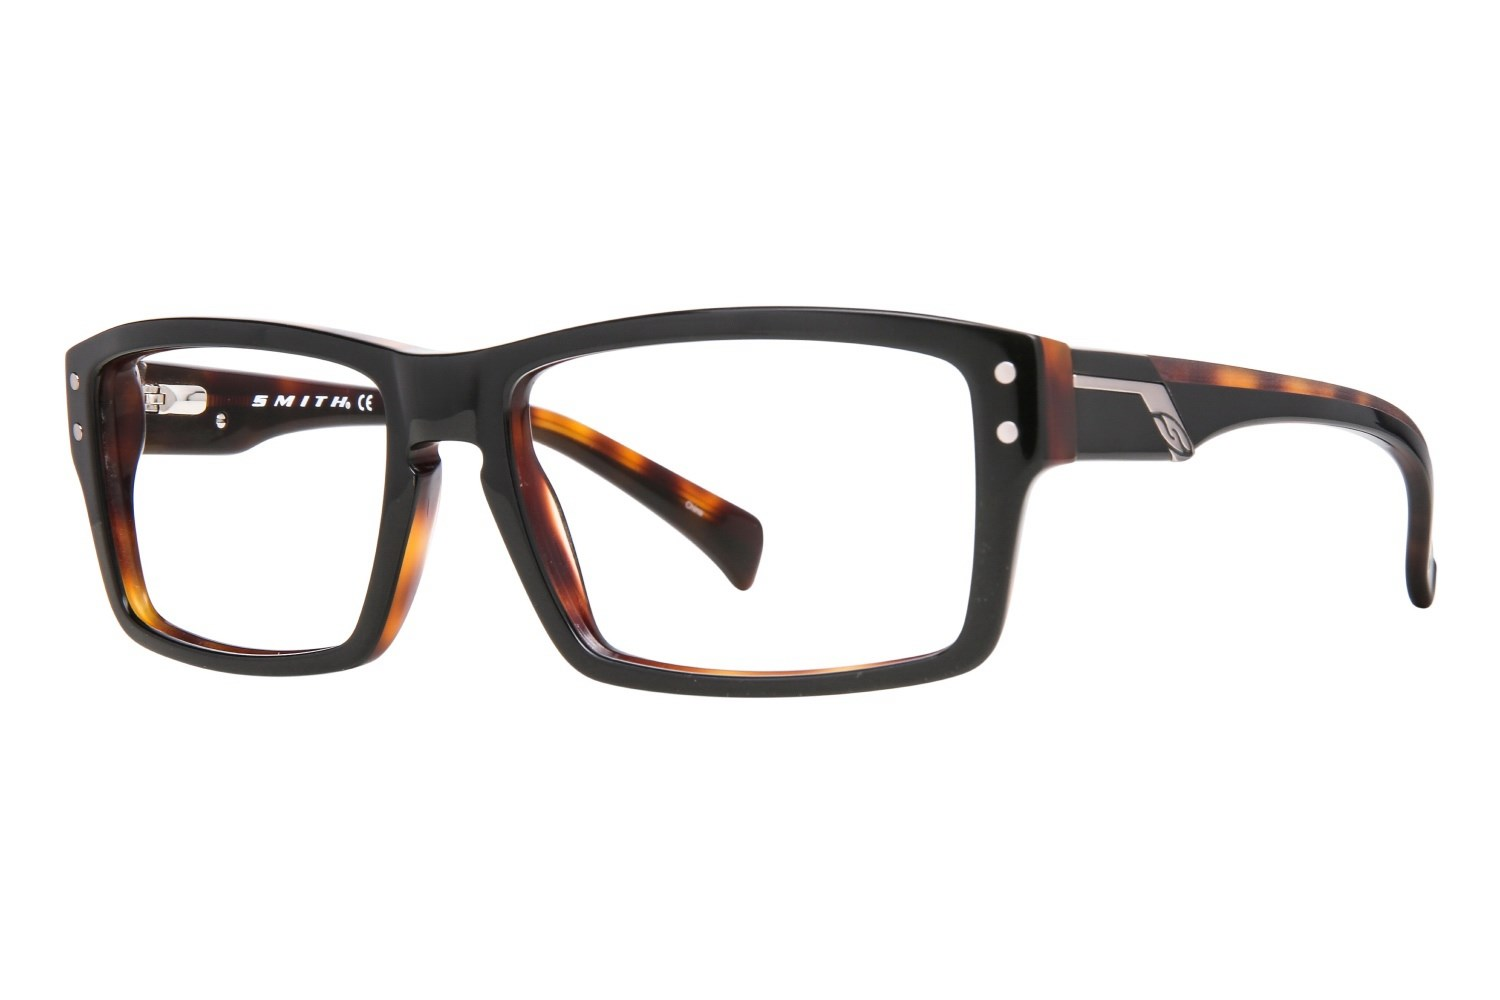 smith-wainwright-prescription-eyeglasses